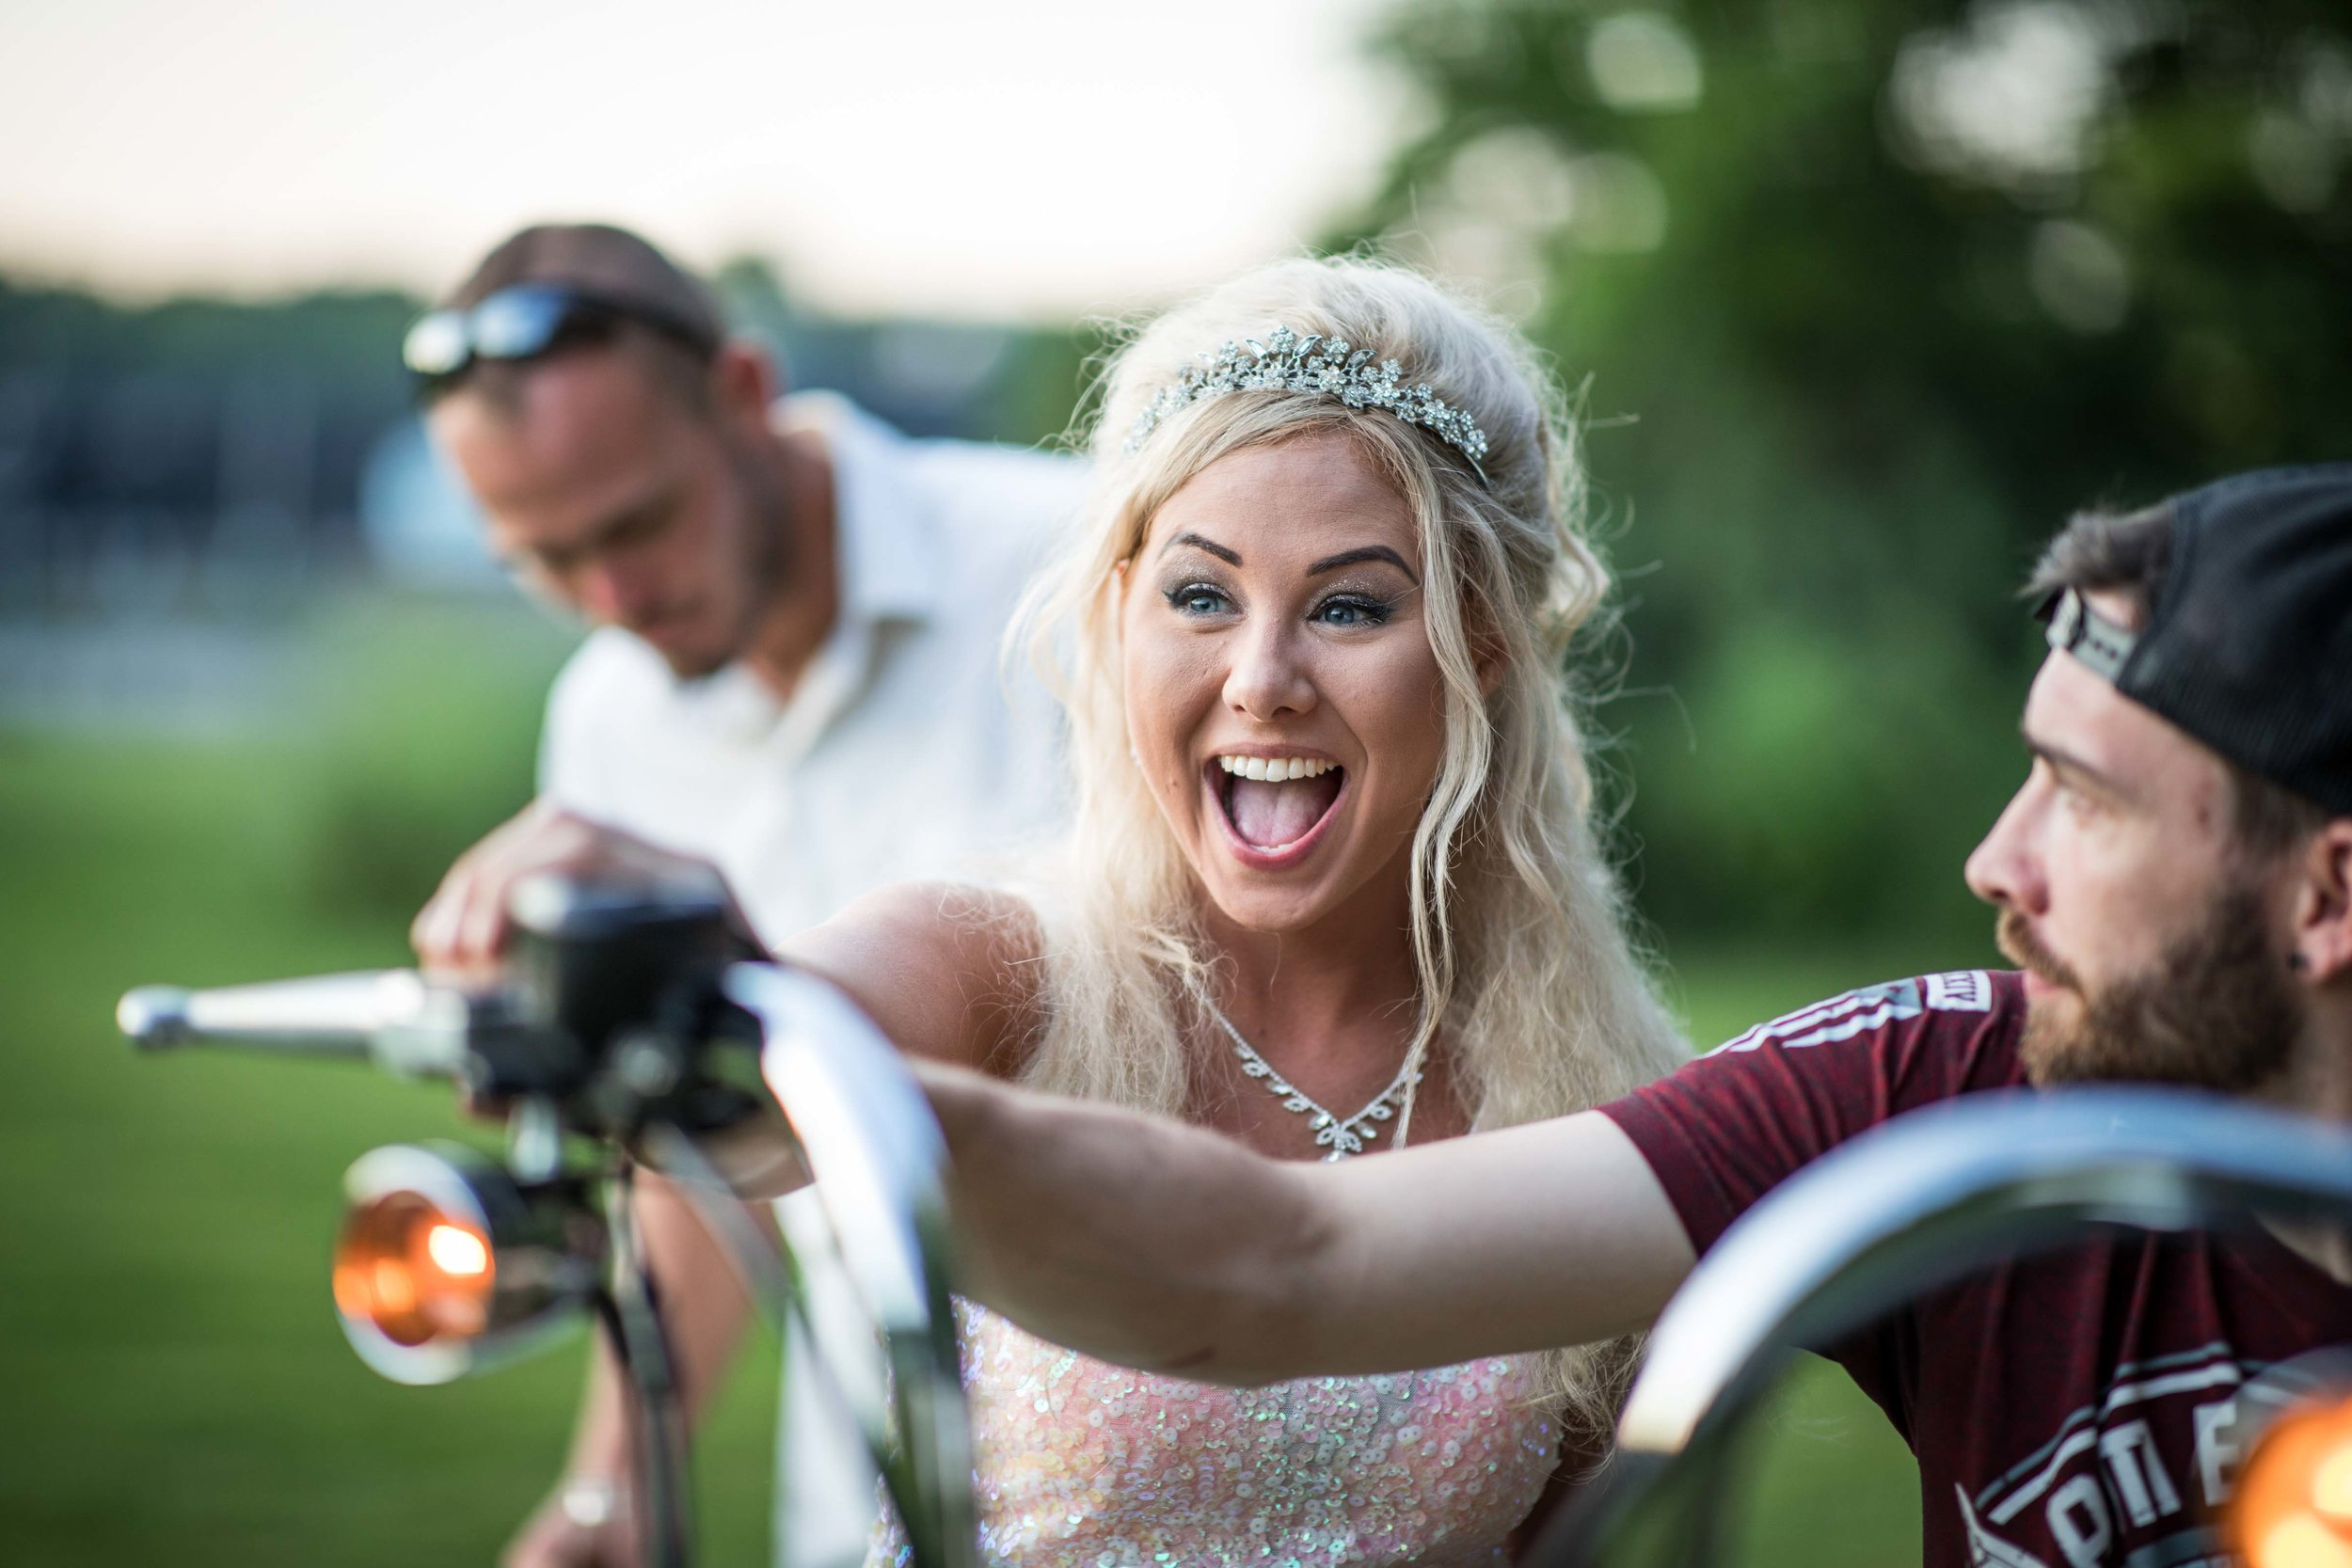 The Bride looks excited as she revs the engine of a motorcycle